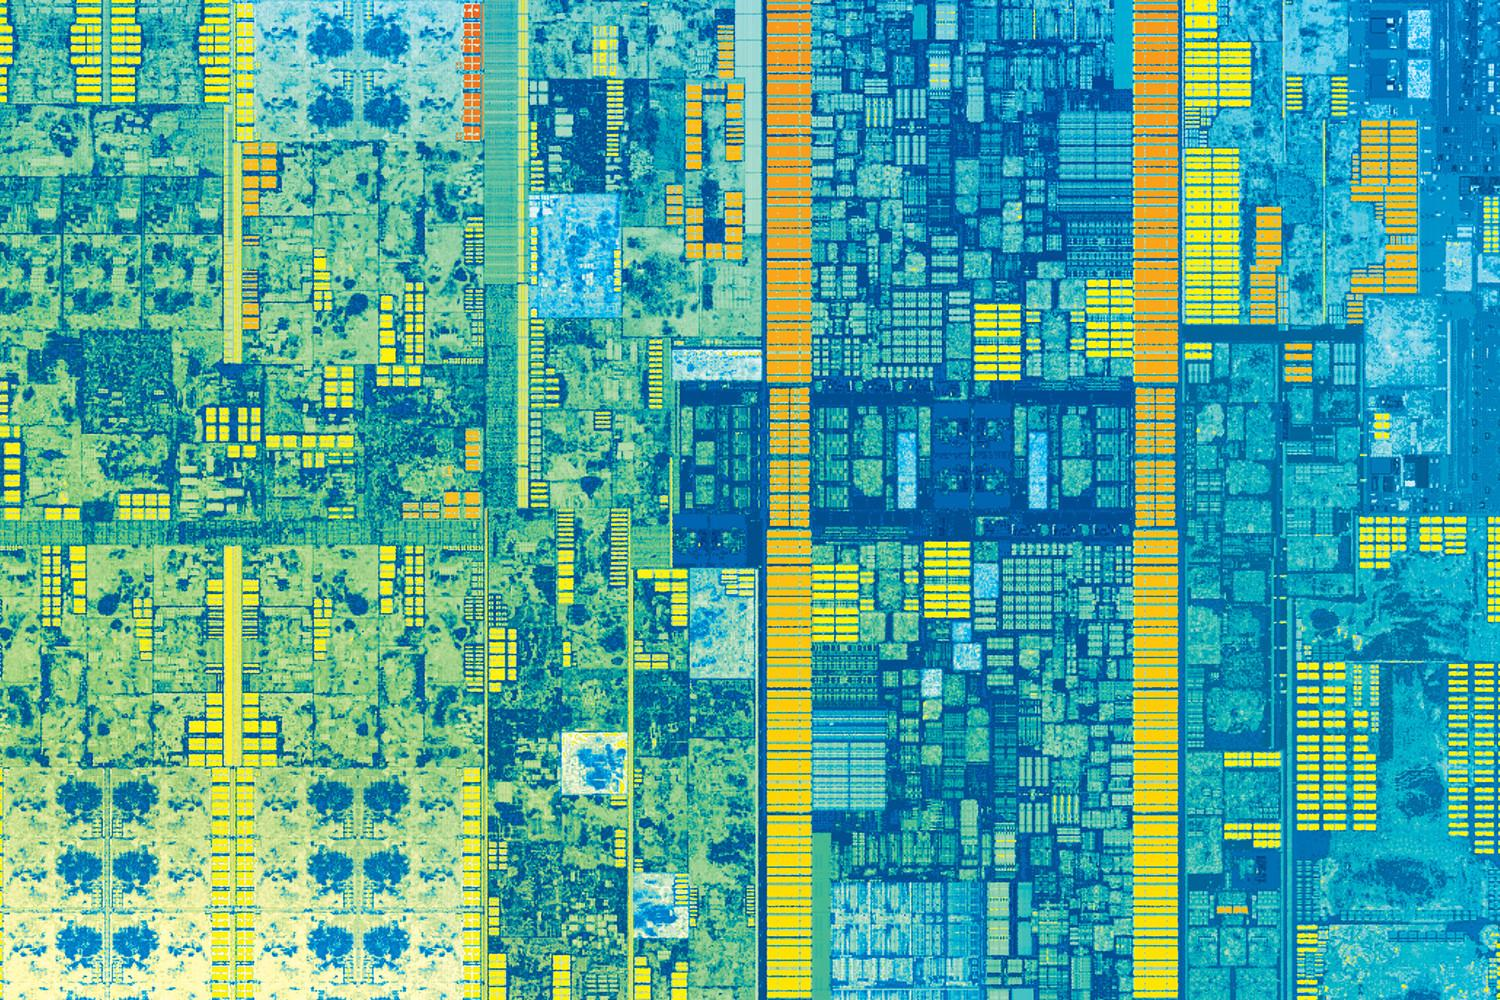 Better battery life, 4K love, and more of the perks to Intel's next Core chips